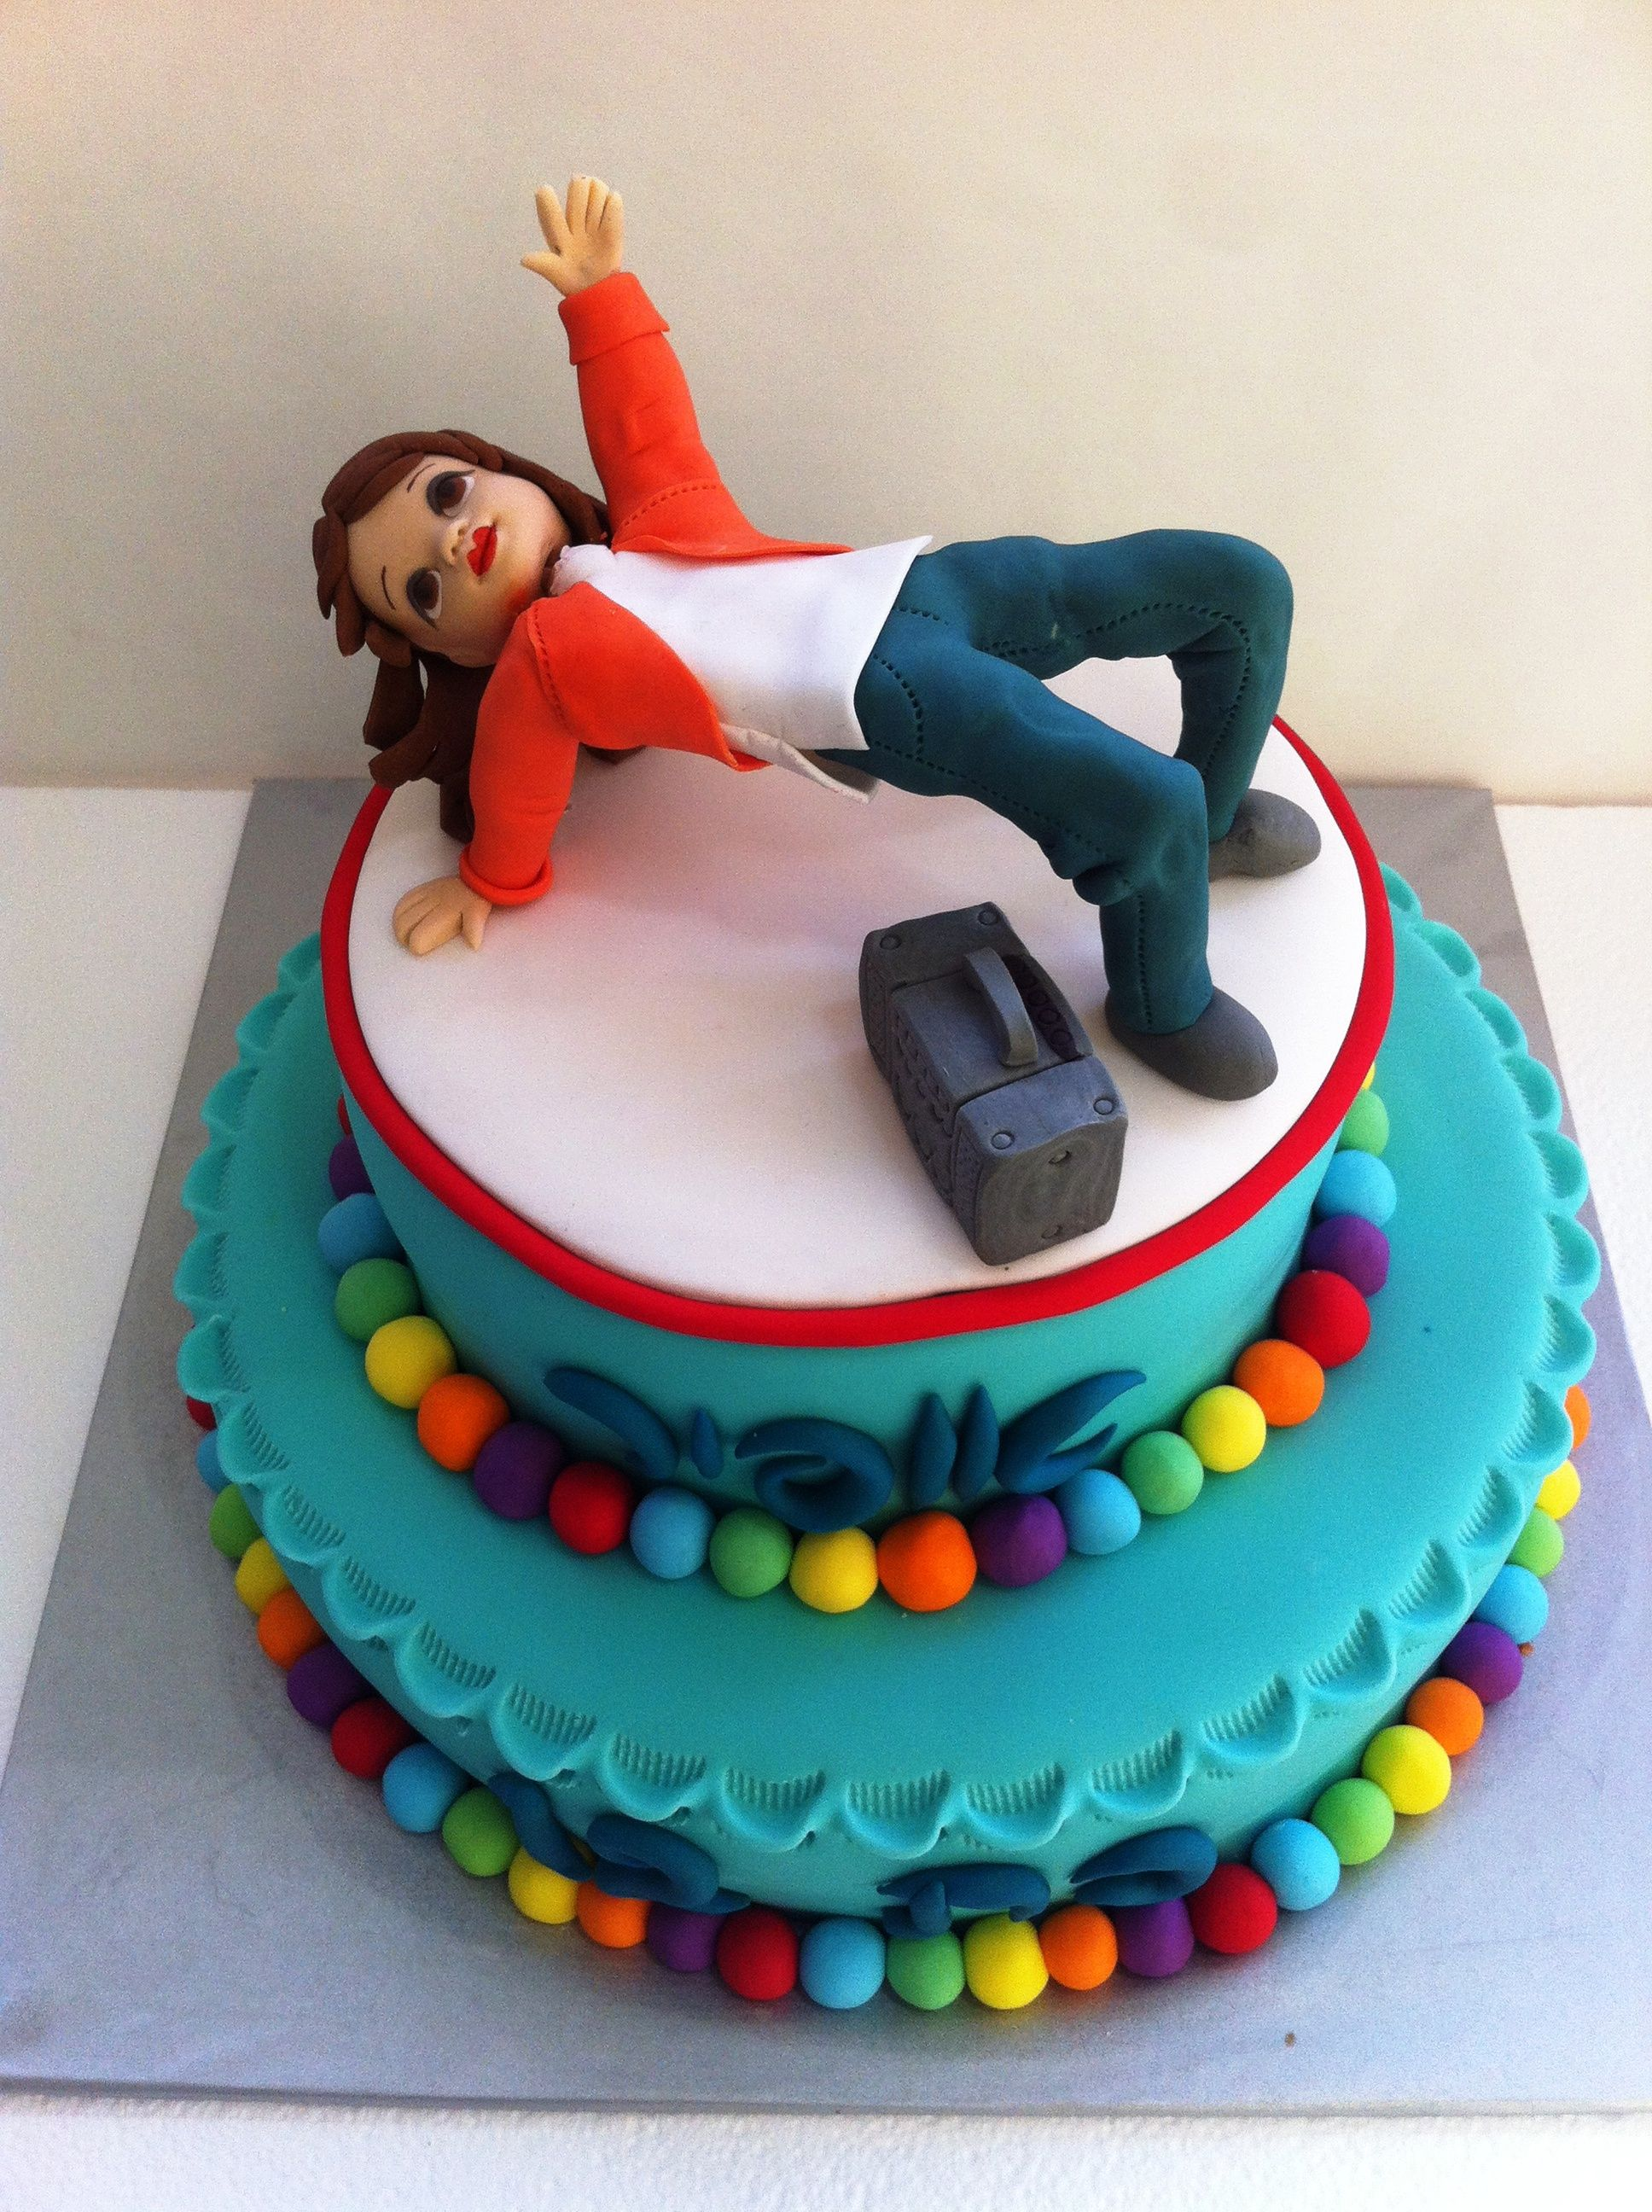 Pin on Birthday cakes by Noga